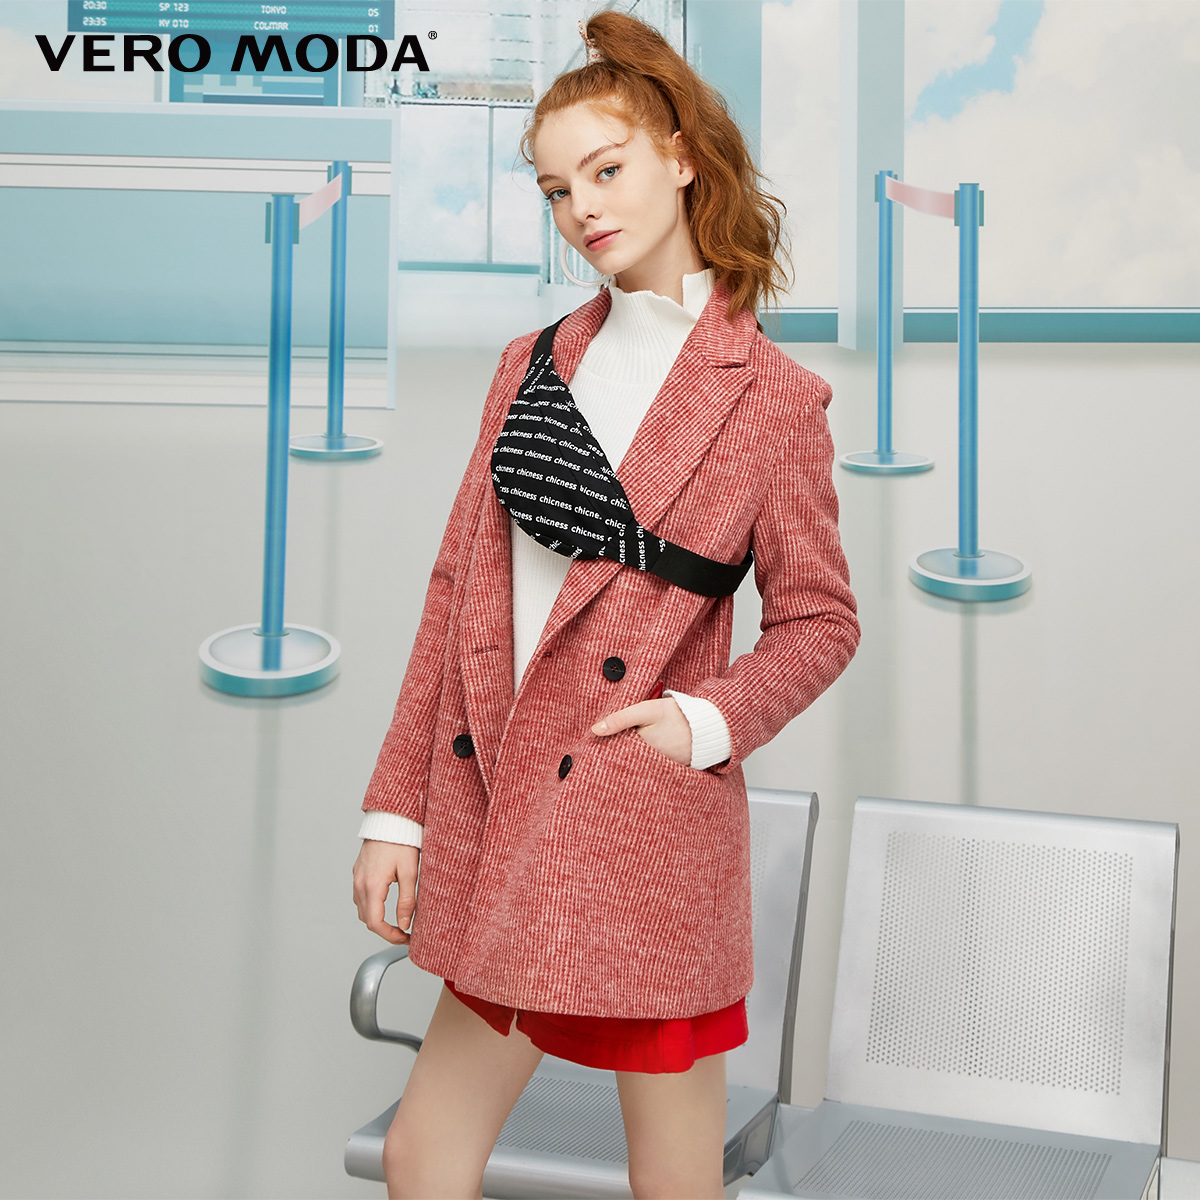 Vero Moda New Vintage Women's Lapel Double-breasted Blazer Suit Jacket | 319308589